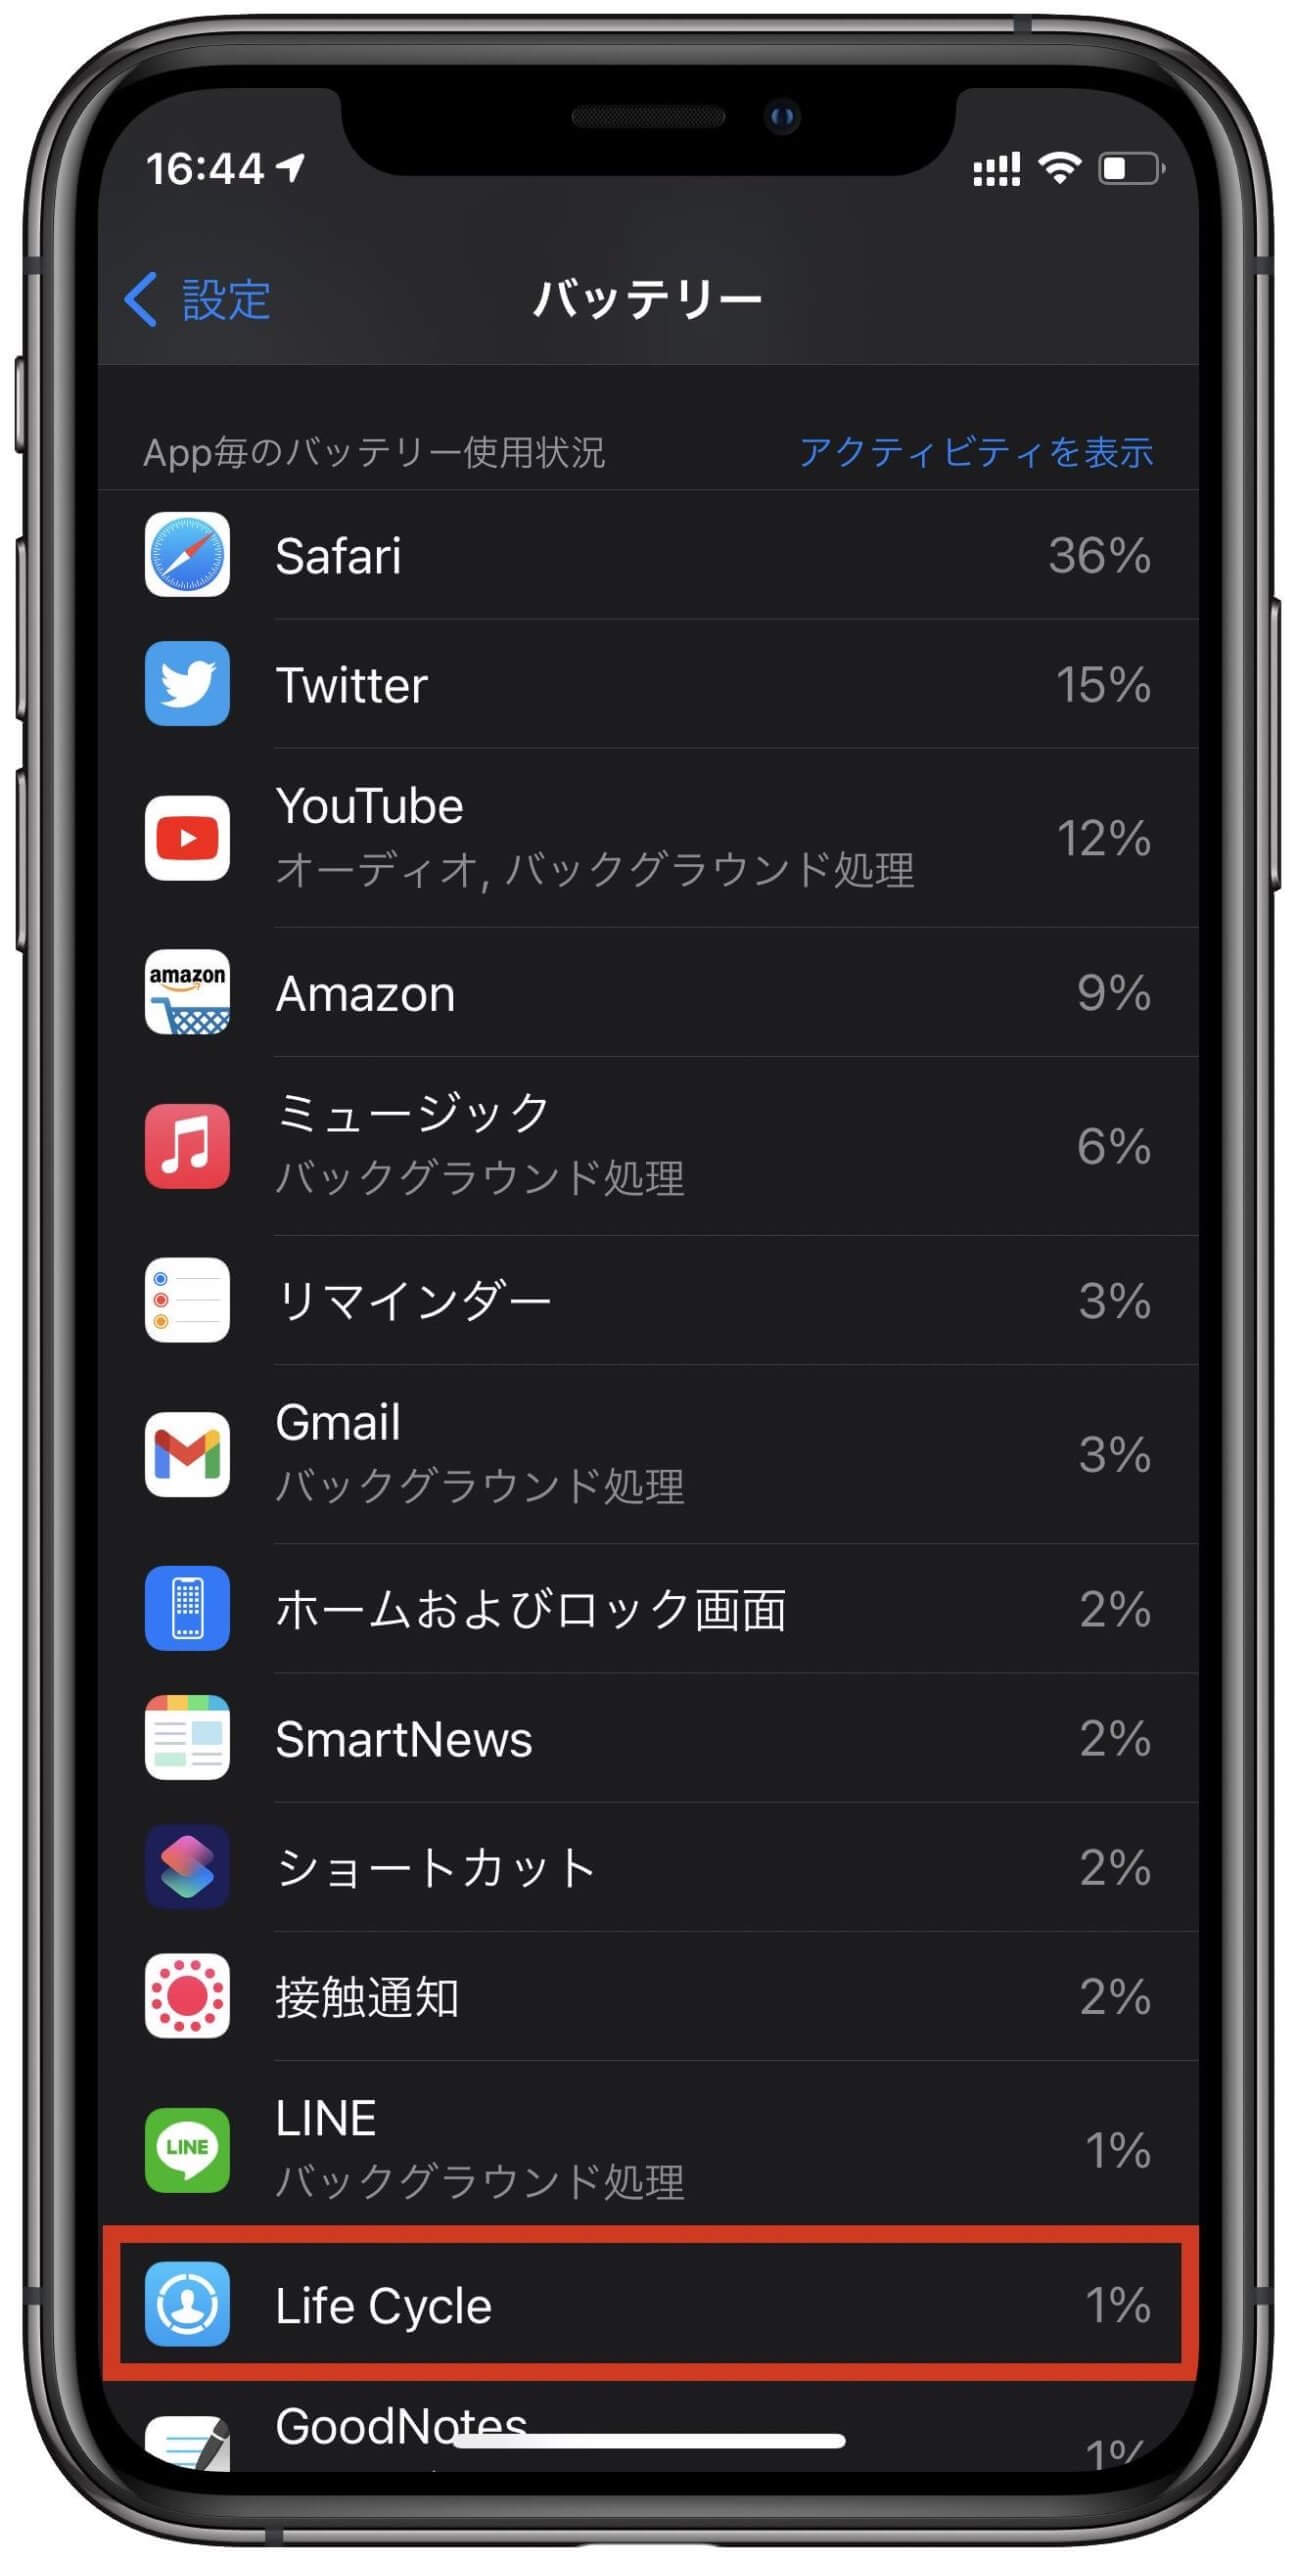 LifeCycleバッテリー消費